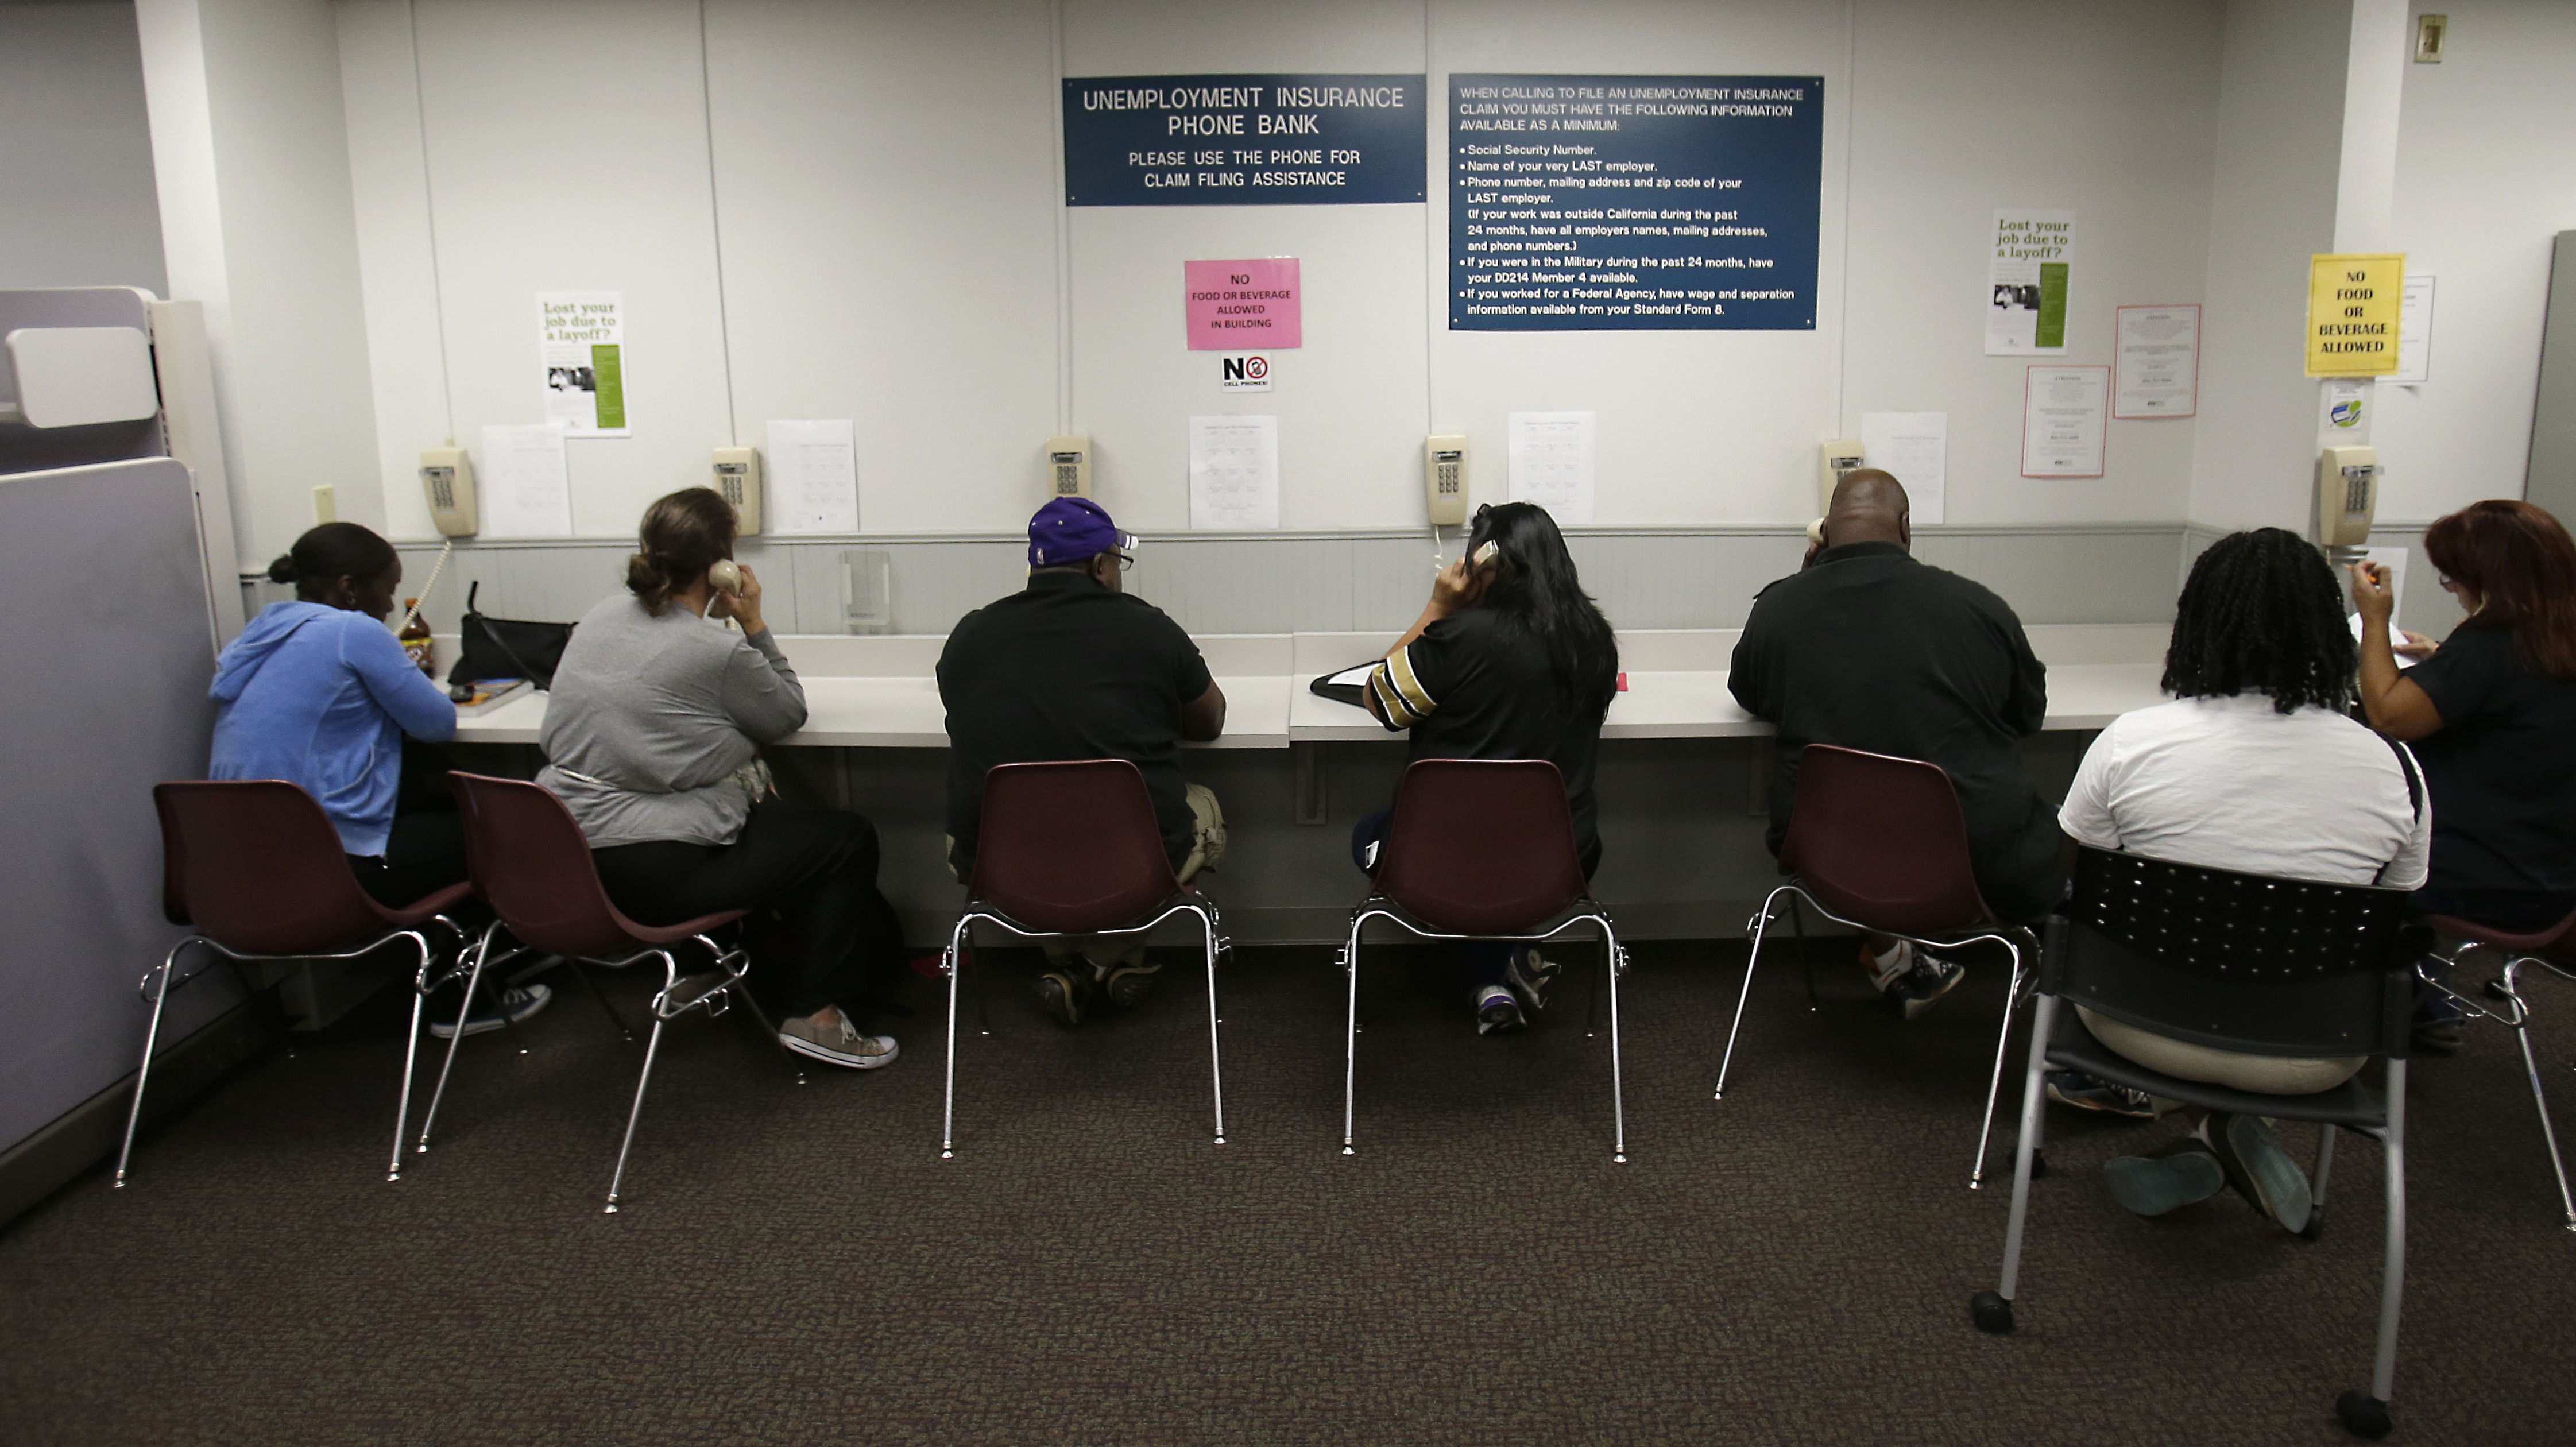 Visitors use the Unemployment Insurance Phone Bank in Sacramento, Calif., in 2014.